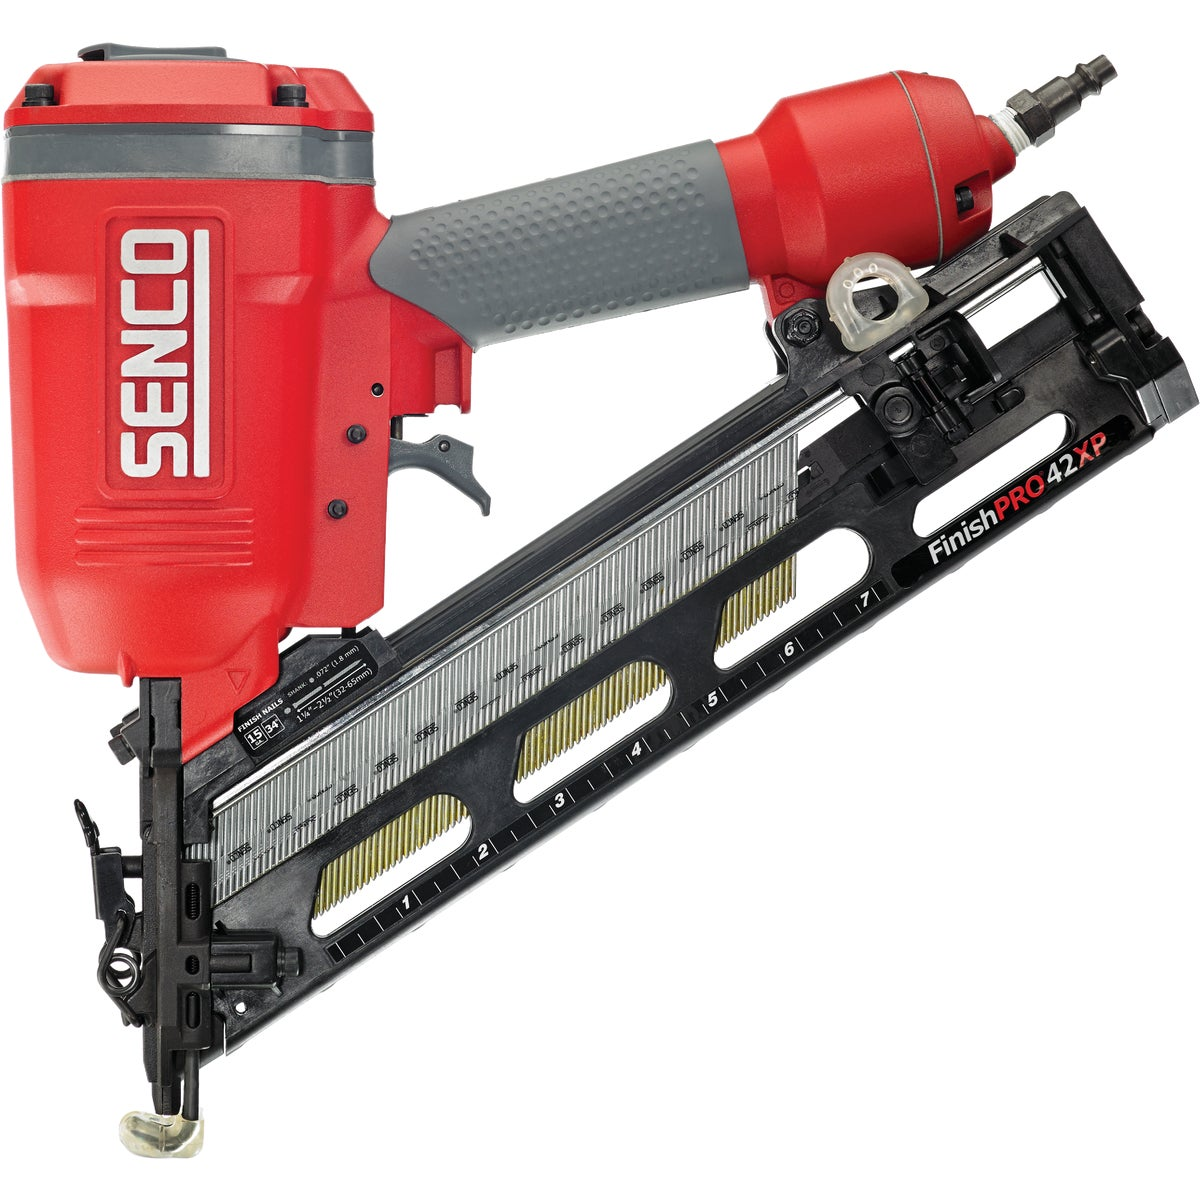 FINISHPRO 42XP NAILER - 4G0001N by Senco Brands